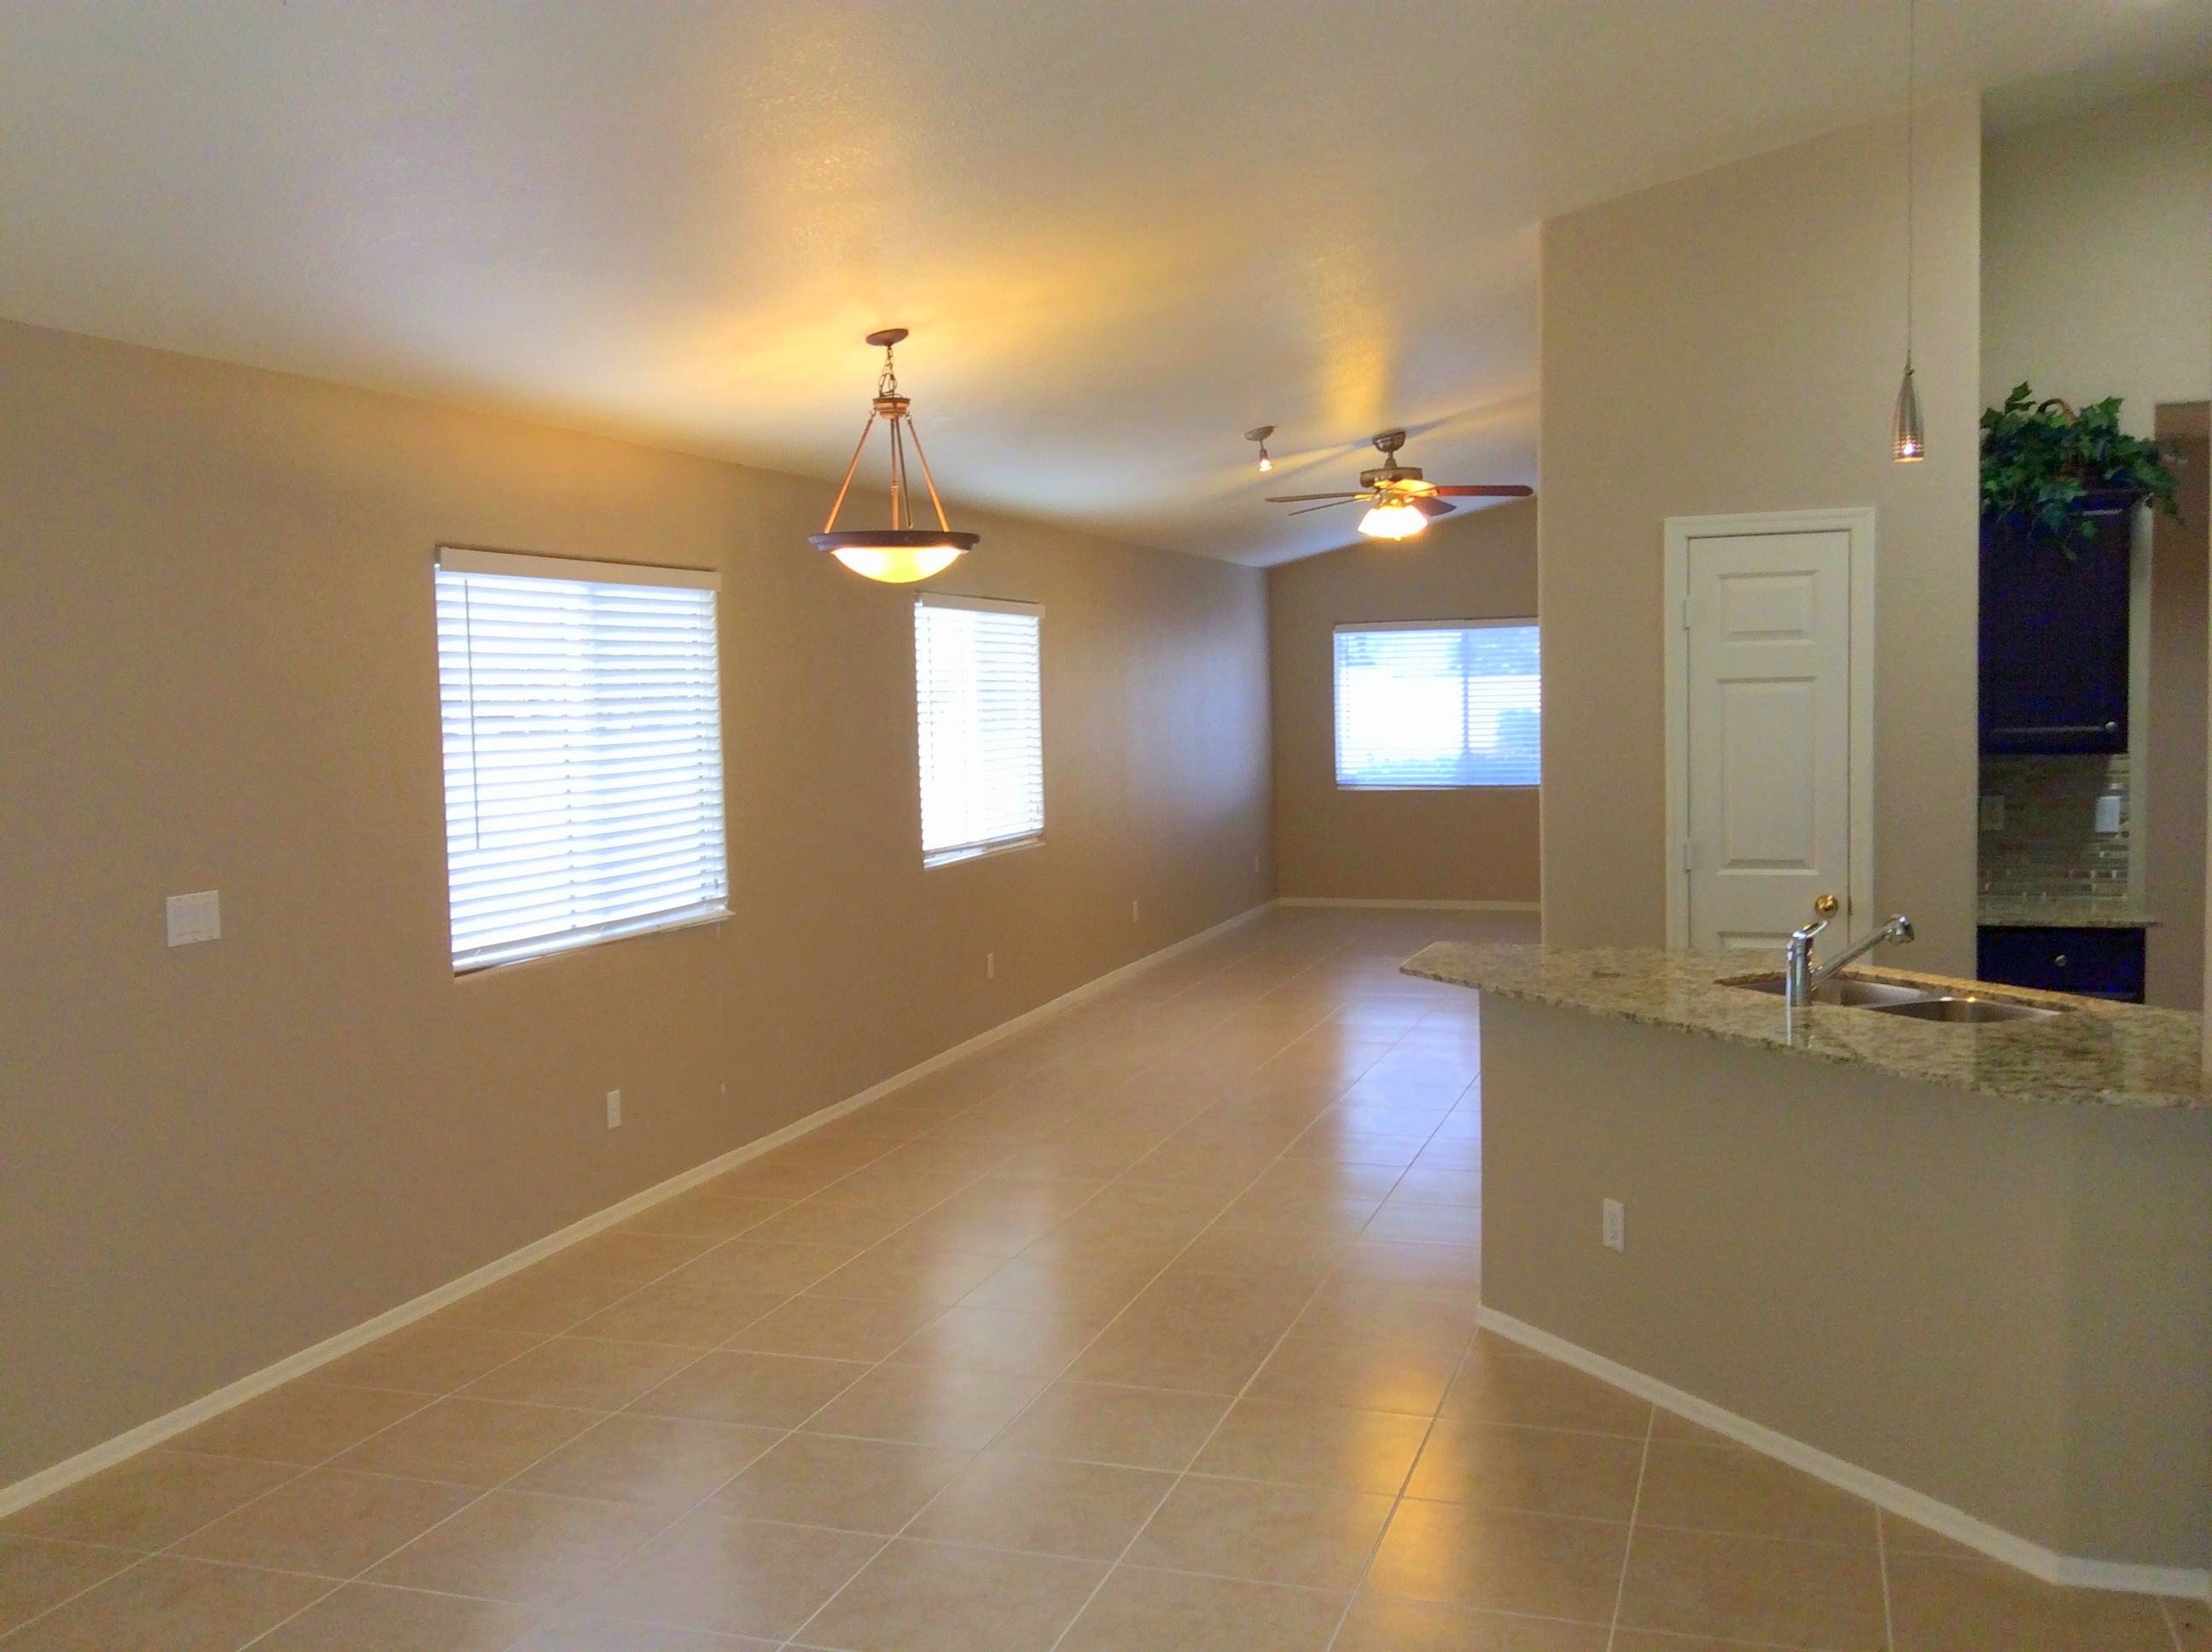 3 Bed Home for Sale: 2095 W Double Eagle Dr Oro Valley